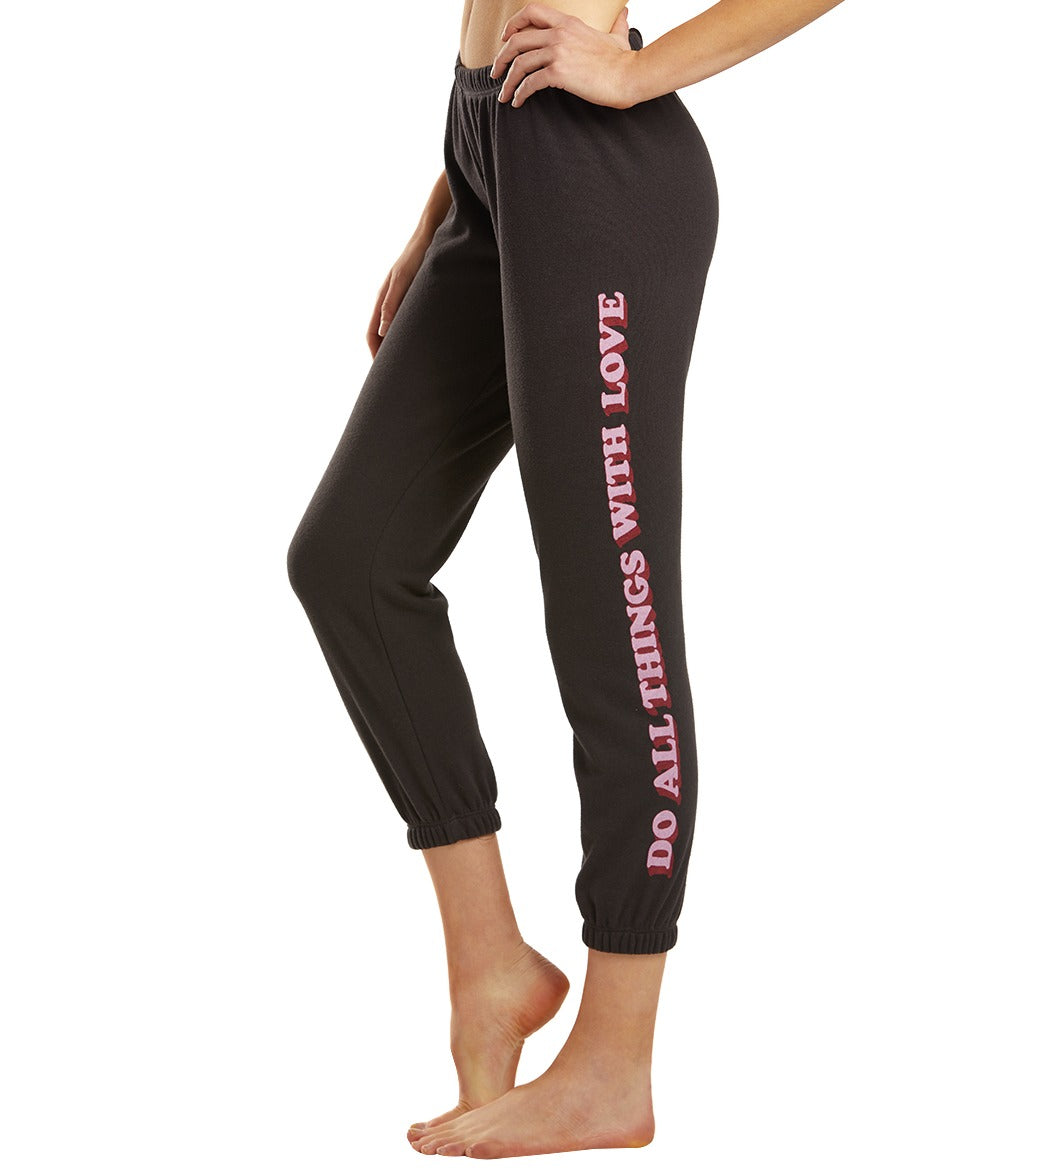 Spiritual Gangster All Things Perfect Sweatpants - Vintage Black Cotton